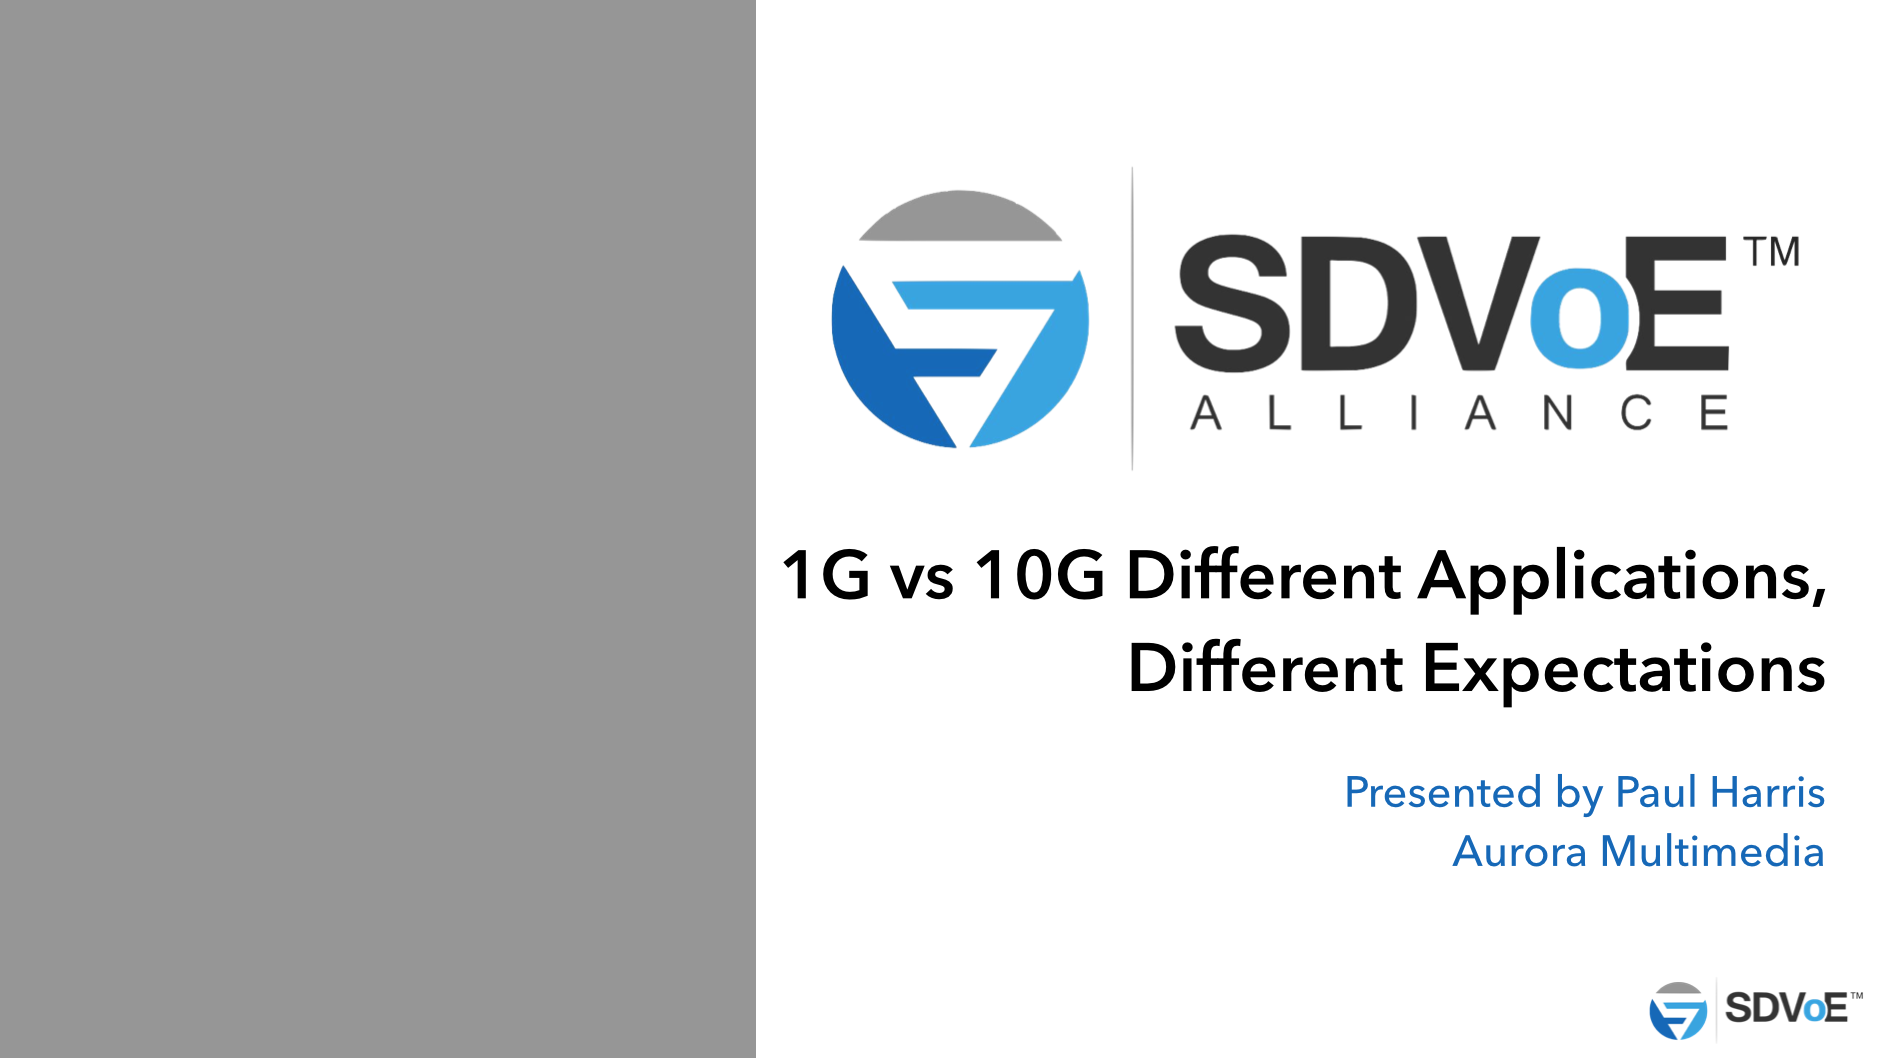 1G vs 10G - Applications and Expectations